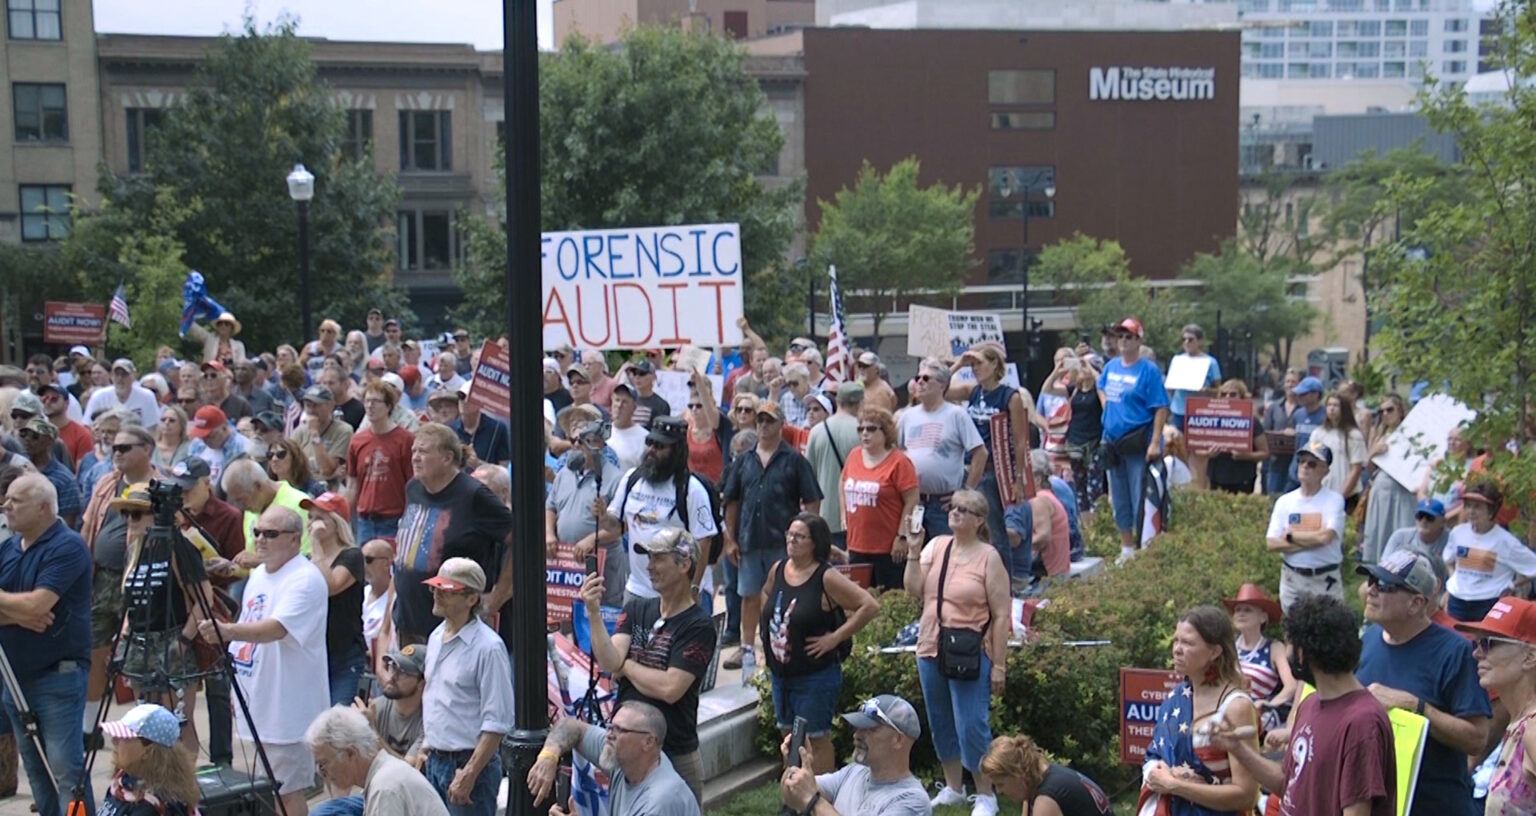 Protestors gather in front of the State Street entrance of th Wisconsin Capitol, with one holding a sign reading Forensic Audit.